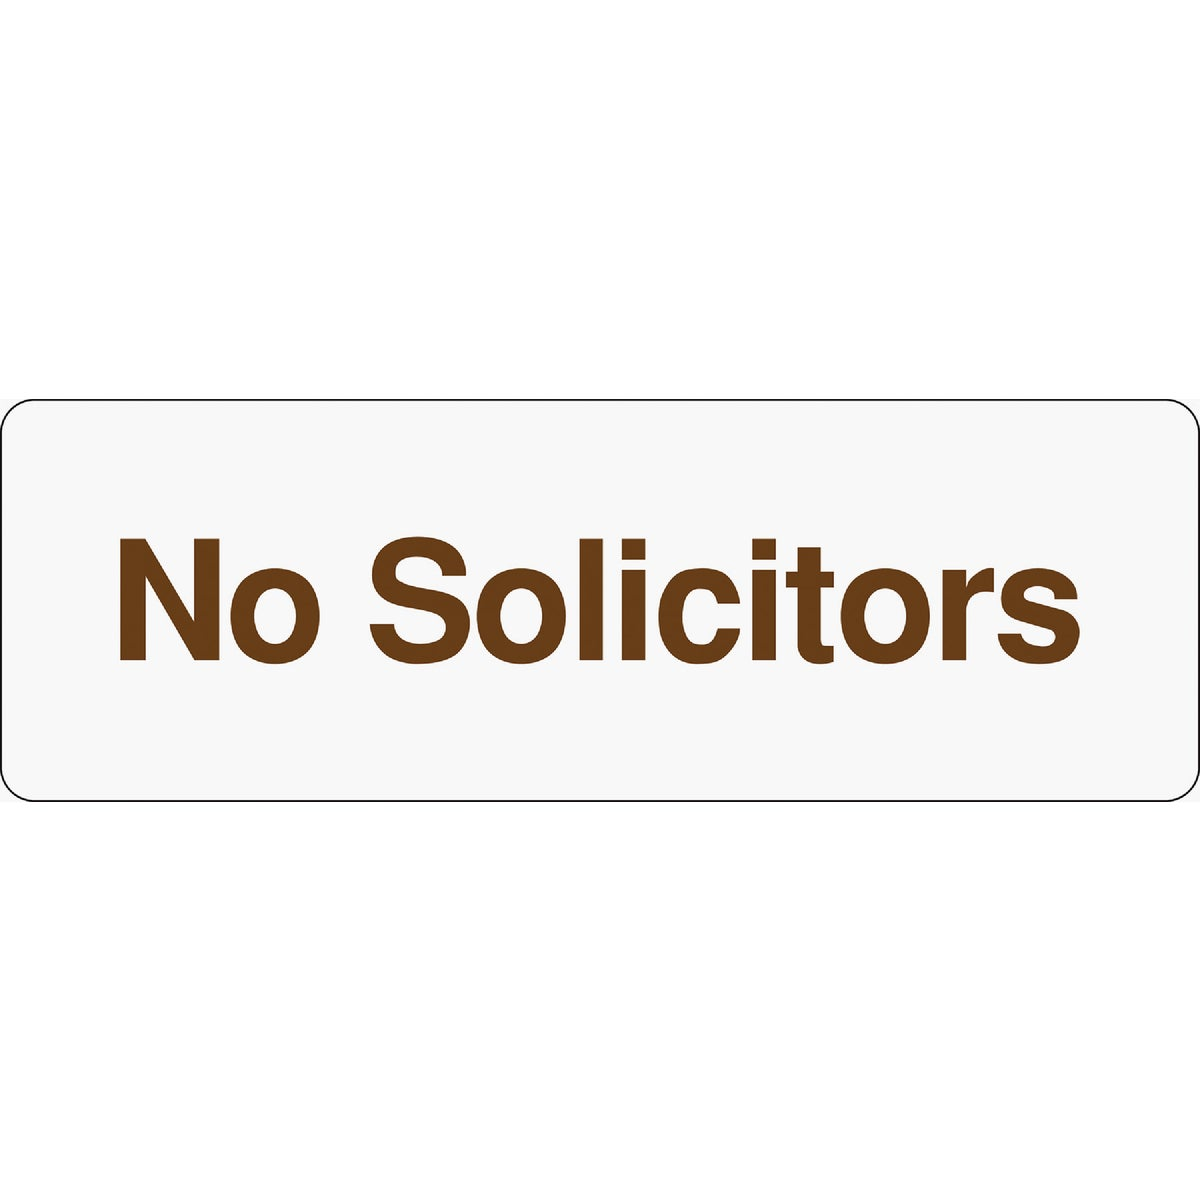 3X9 NO SOLICITORS SIGN - D-0 by Hy Ko Prods Co